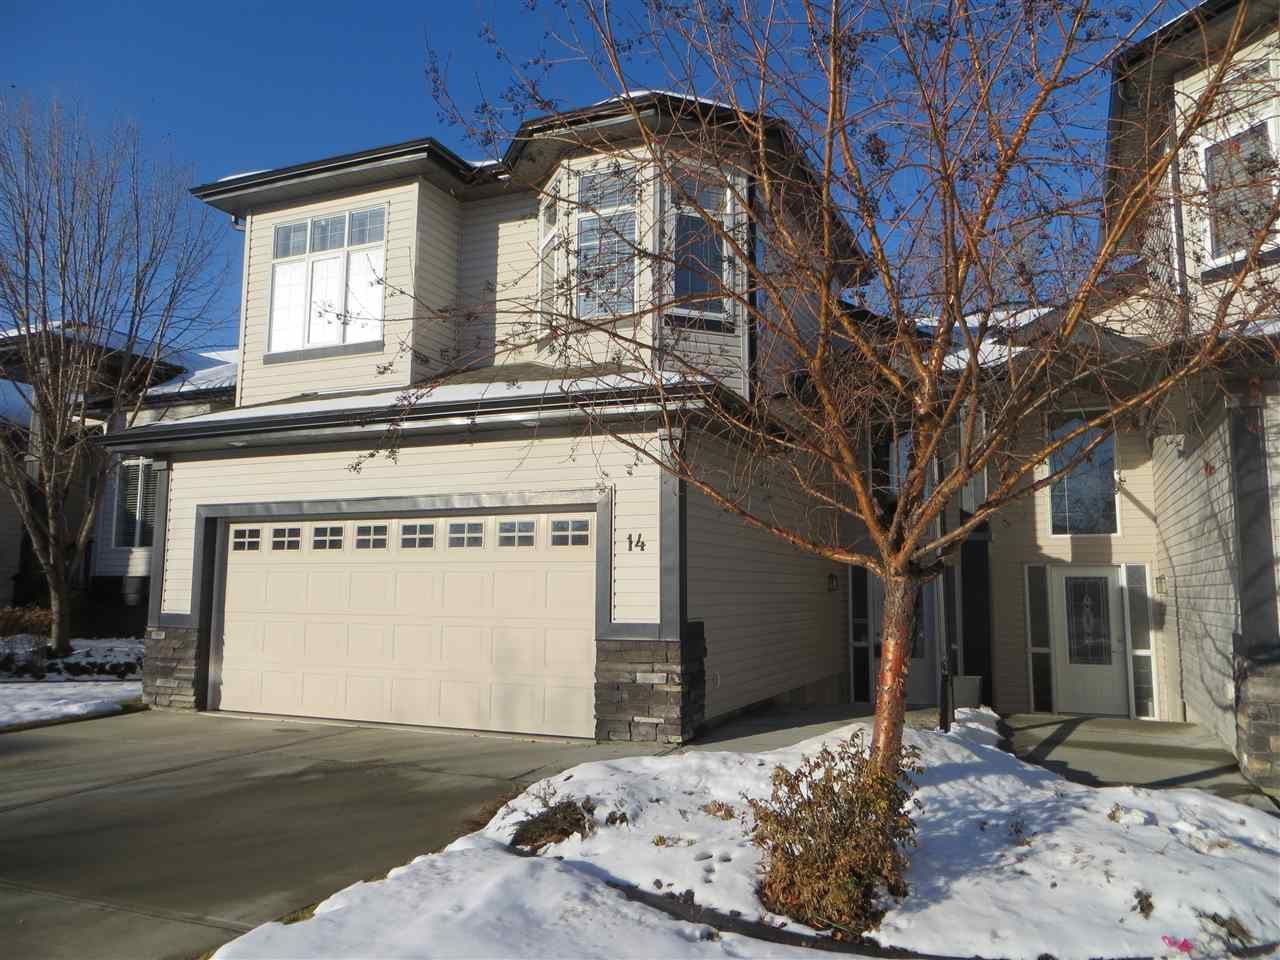 Excellent value for this duplex style condo located in Rutherford with nearby schools, shopping, grocery amenities, quick access to the Henday and under construction LRT park & ride, minutes from future site of new hospital. Maintenance free exterior; condo fees cover snow removal, landscaping, irrigation and exterior maintenance. Natural gas BBQ hook up on deck; prime location backs onto a quiet acreage, ideal for privacy. Main floor features open concept formal dining room, living room with fireplace, nook and kitchen along with a full bath and bedroom. Upstairs is your master retreat with spacious bedroom, ensuite with soaker tub, separate shower and walk-in closet. Lower level has large rec room, two bedrooms and full bath along with large laundry room and storage under stairs. Stainless steel appliances, granite countertops in kitchen, undermount cabinet lighting, air conditioned. Spacious foyer entryway and large double attached garage; garage floor has had coating applied in last two years.